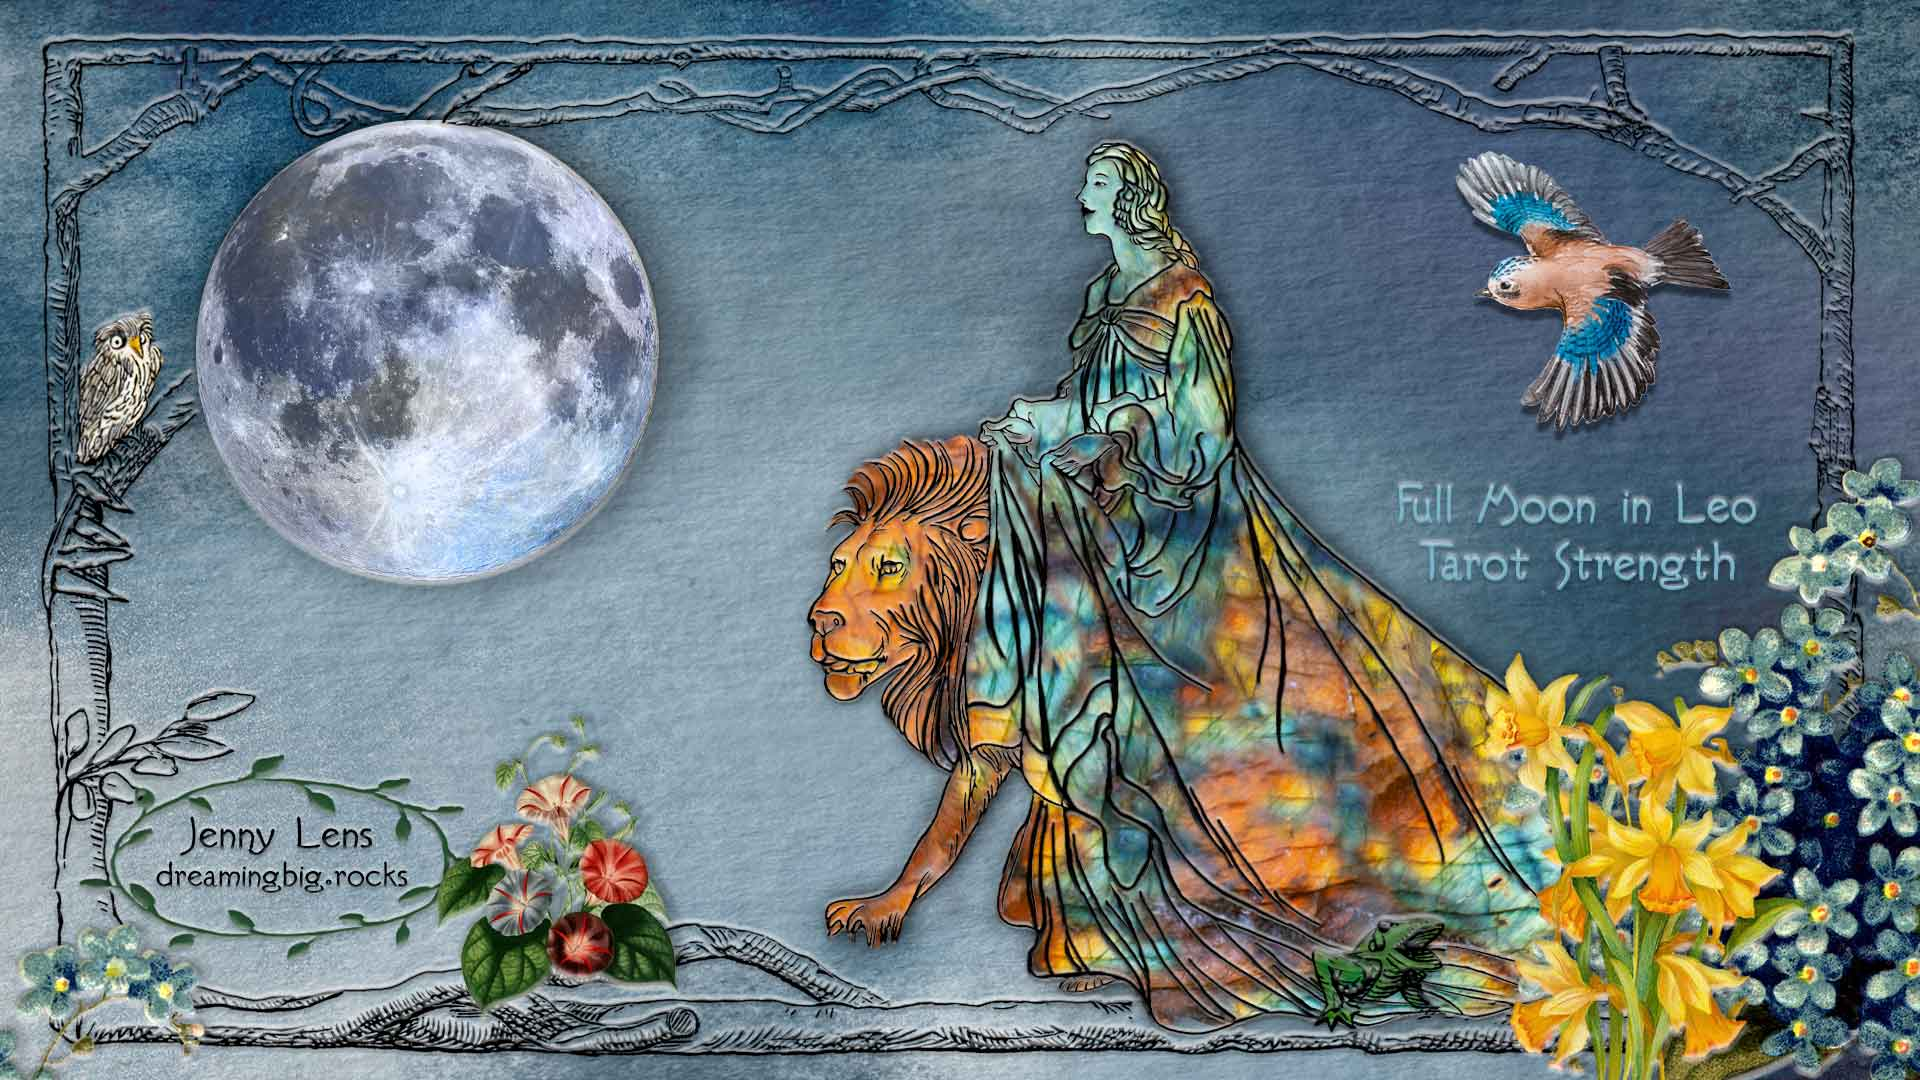 Read more about the article Full Moon in Leo and Tarot Strength